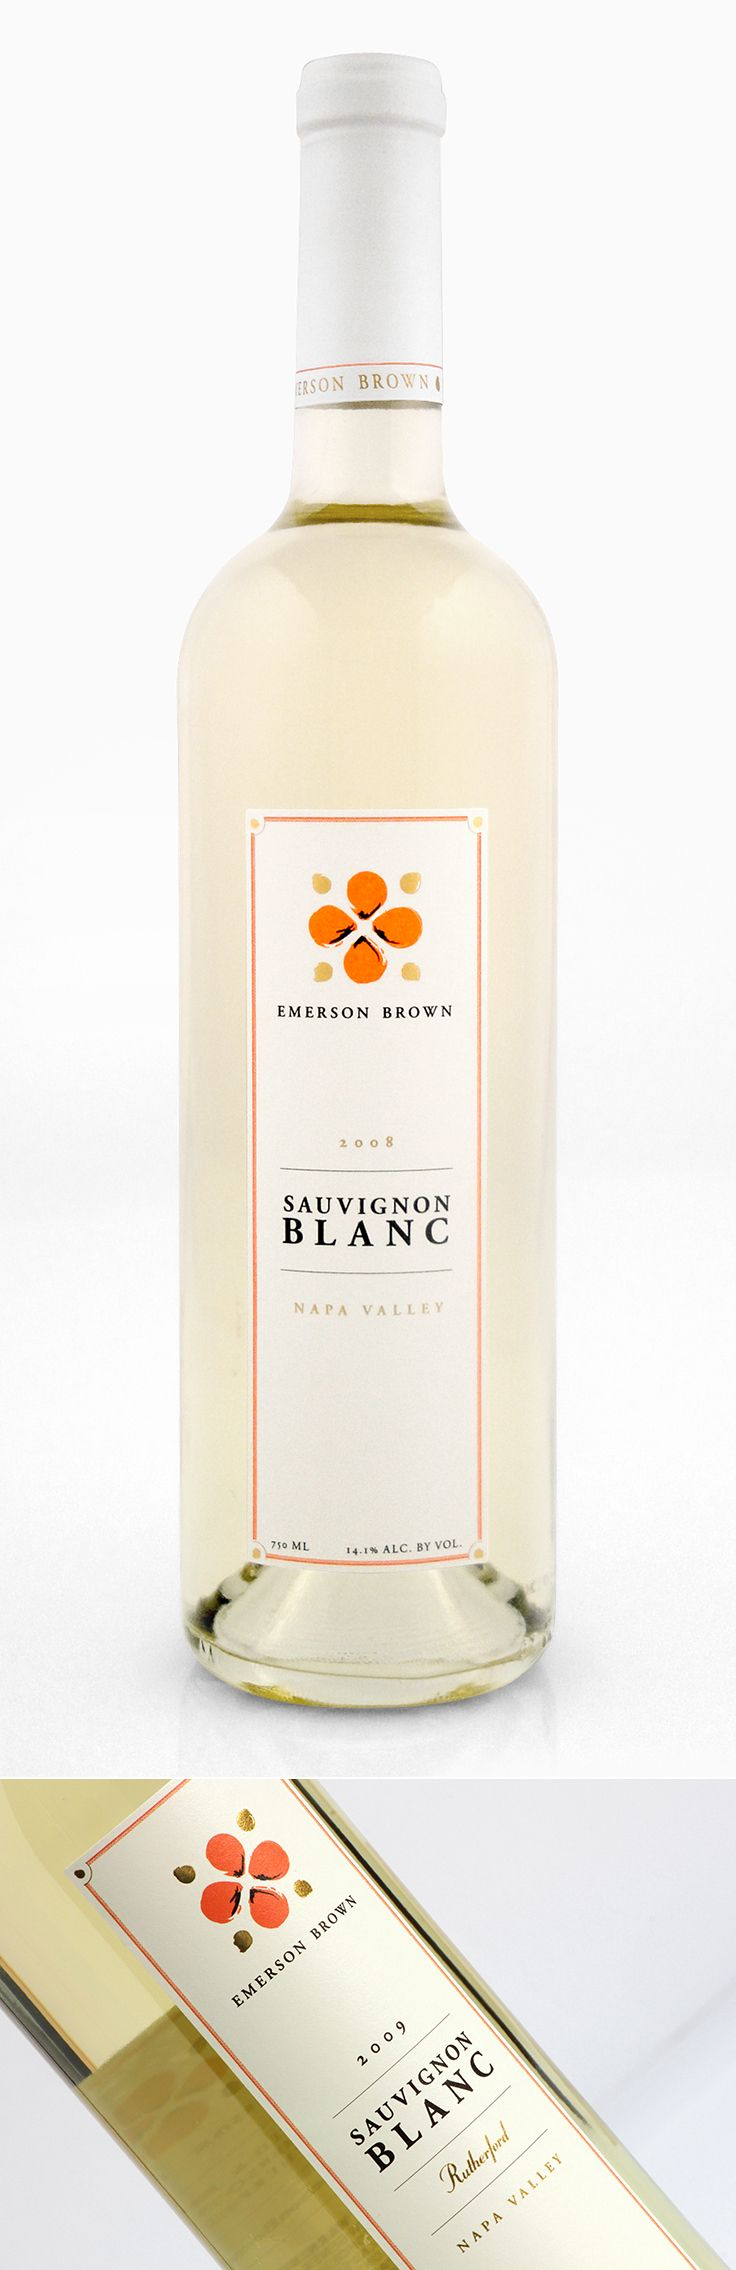 Emerson Brown Wines | Sauvignon Blanc Wine Label and Capsule | by designthis!